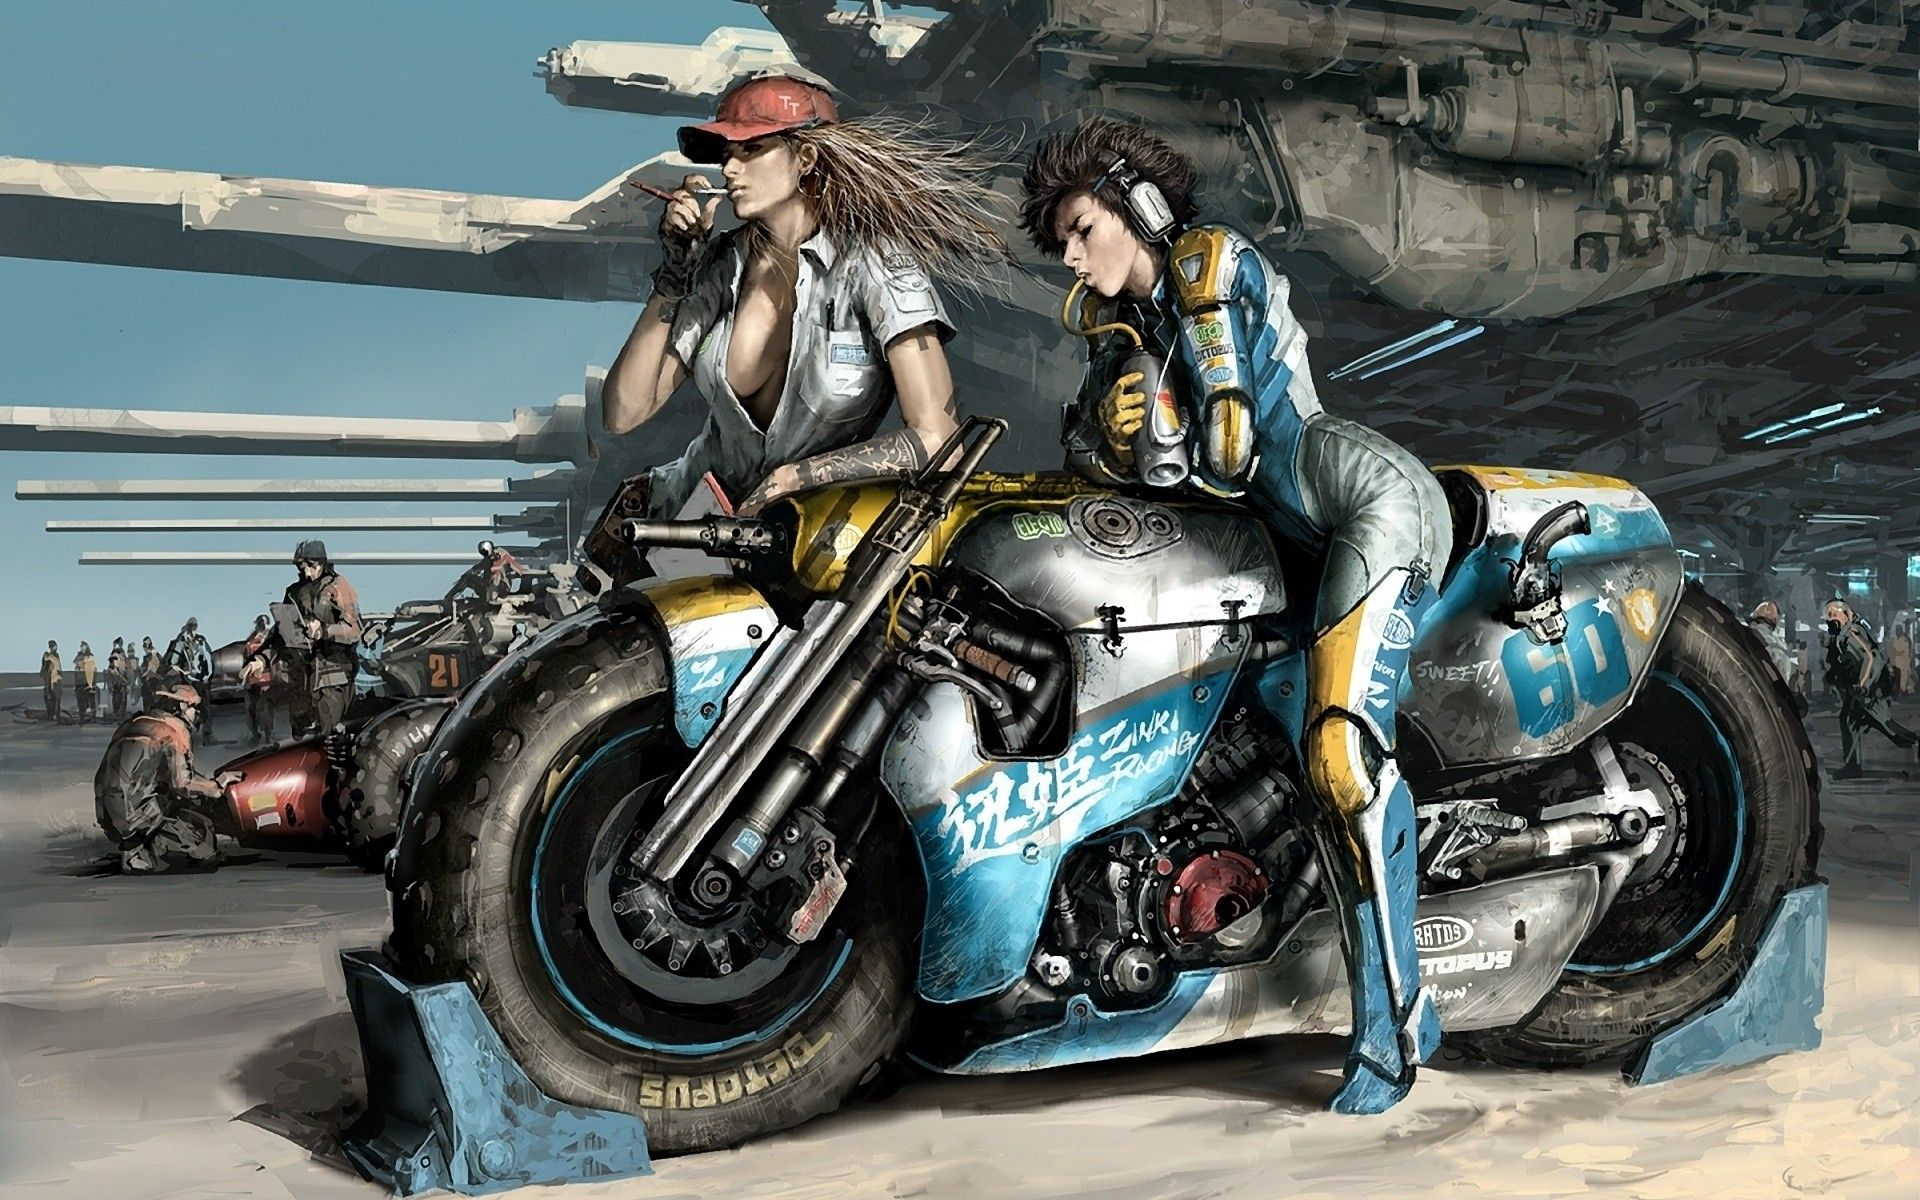 Anime Motorcycle Wallpapers Top Free Anime Motorcycle Backgrounds Wallpaperaccess